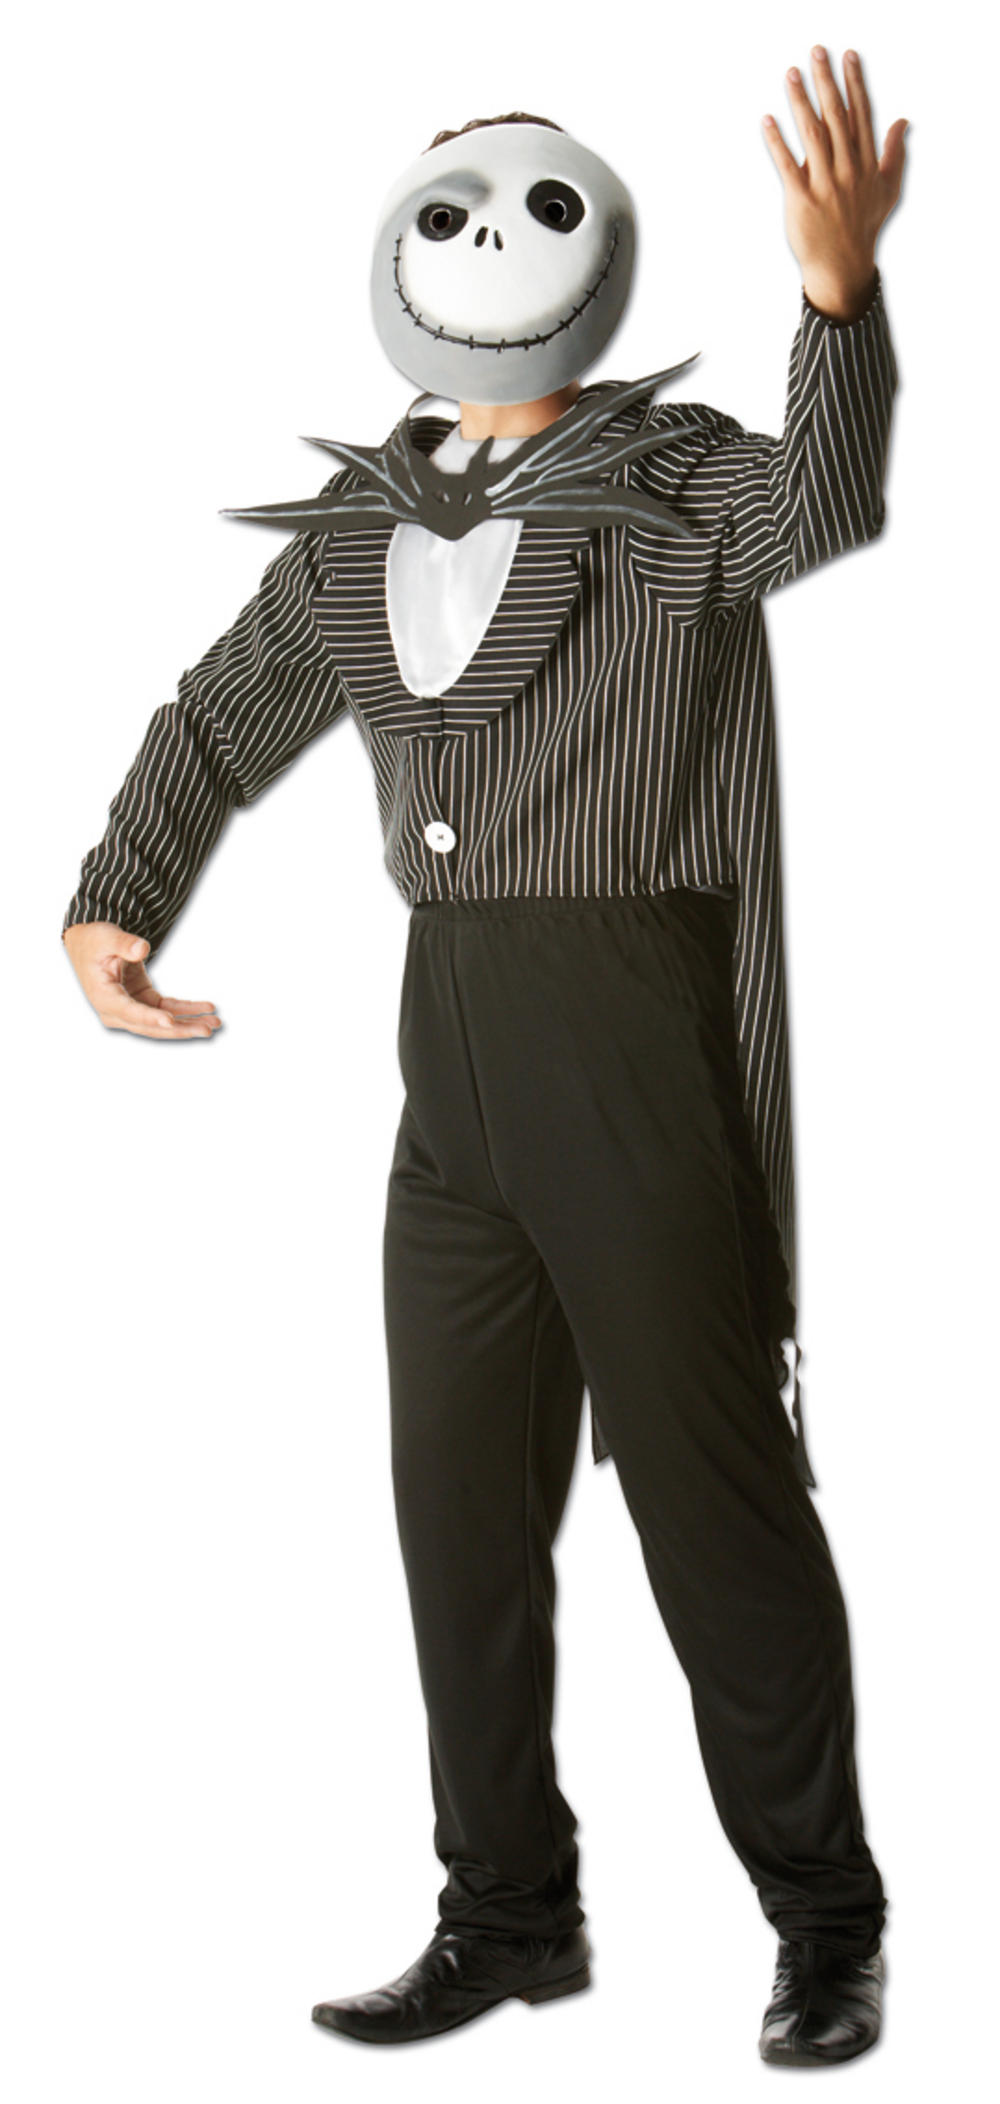 jack skellington the nightmare before christmas halloween costume - Nightmare Before Christmas Halloween Costume